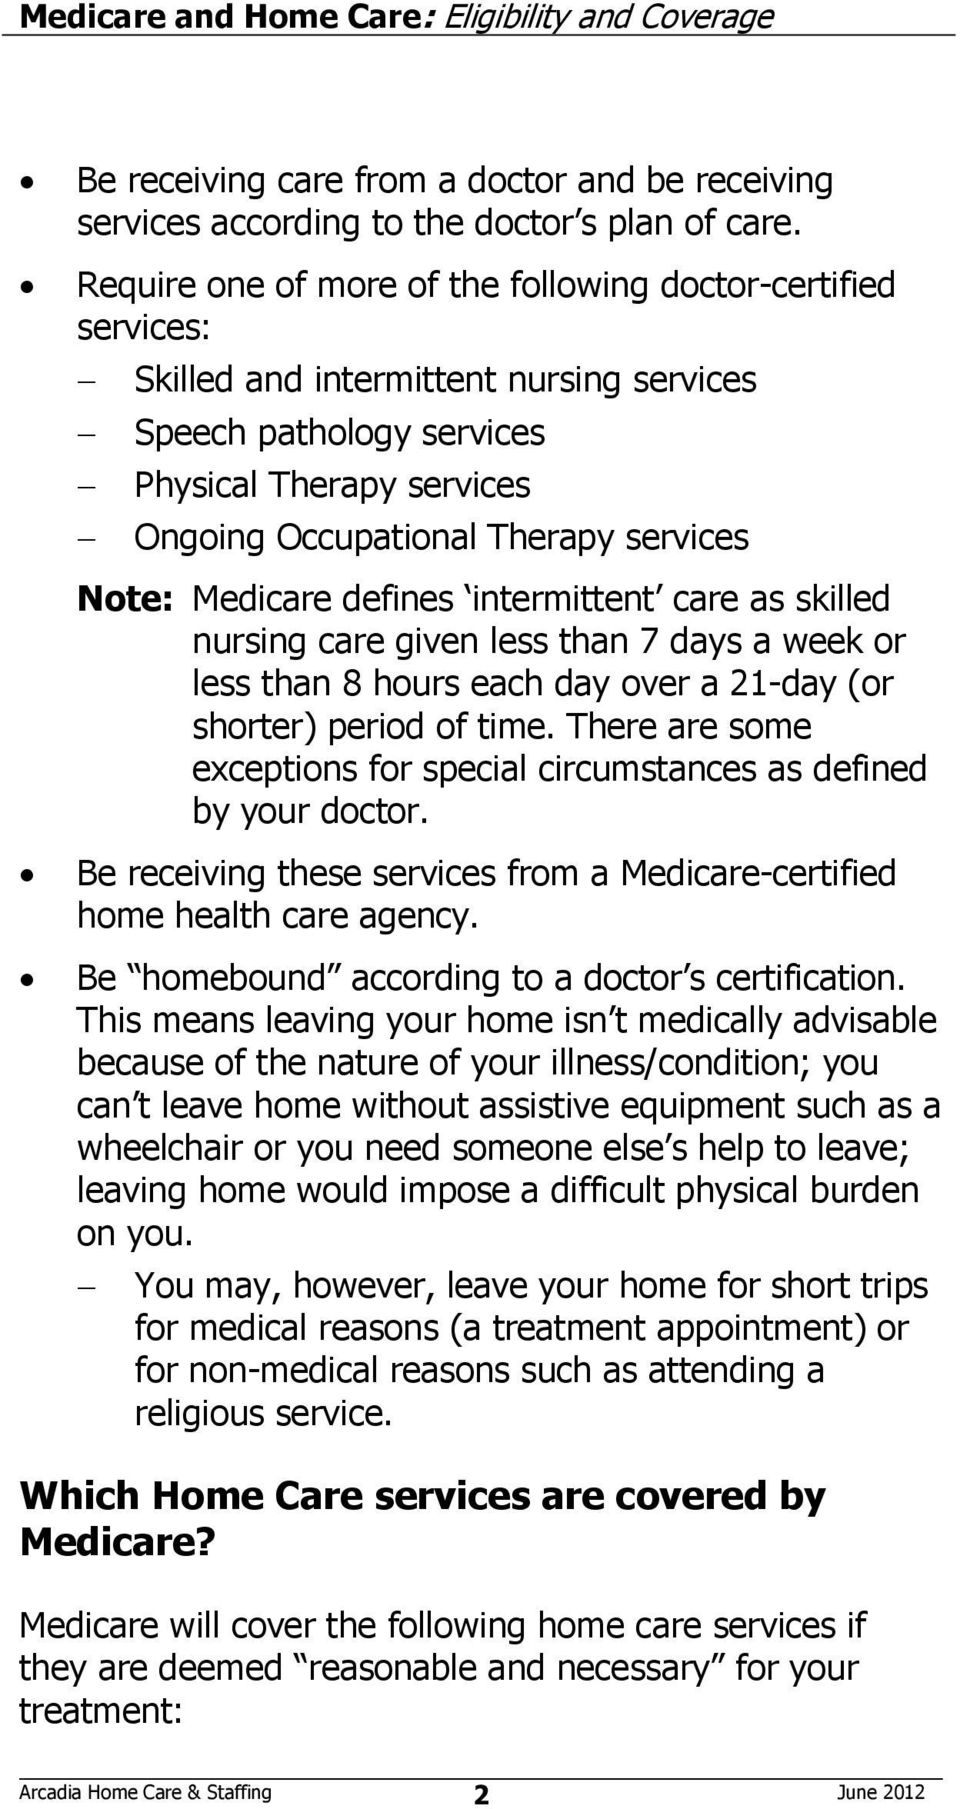 Note: Medicare defines intermittent care as skilled nursing care given less than 7 days a week or less than 8 hours each day over a 21-day (or shorter) period of time.